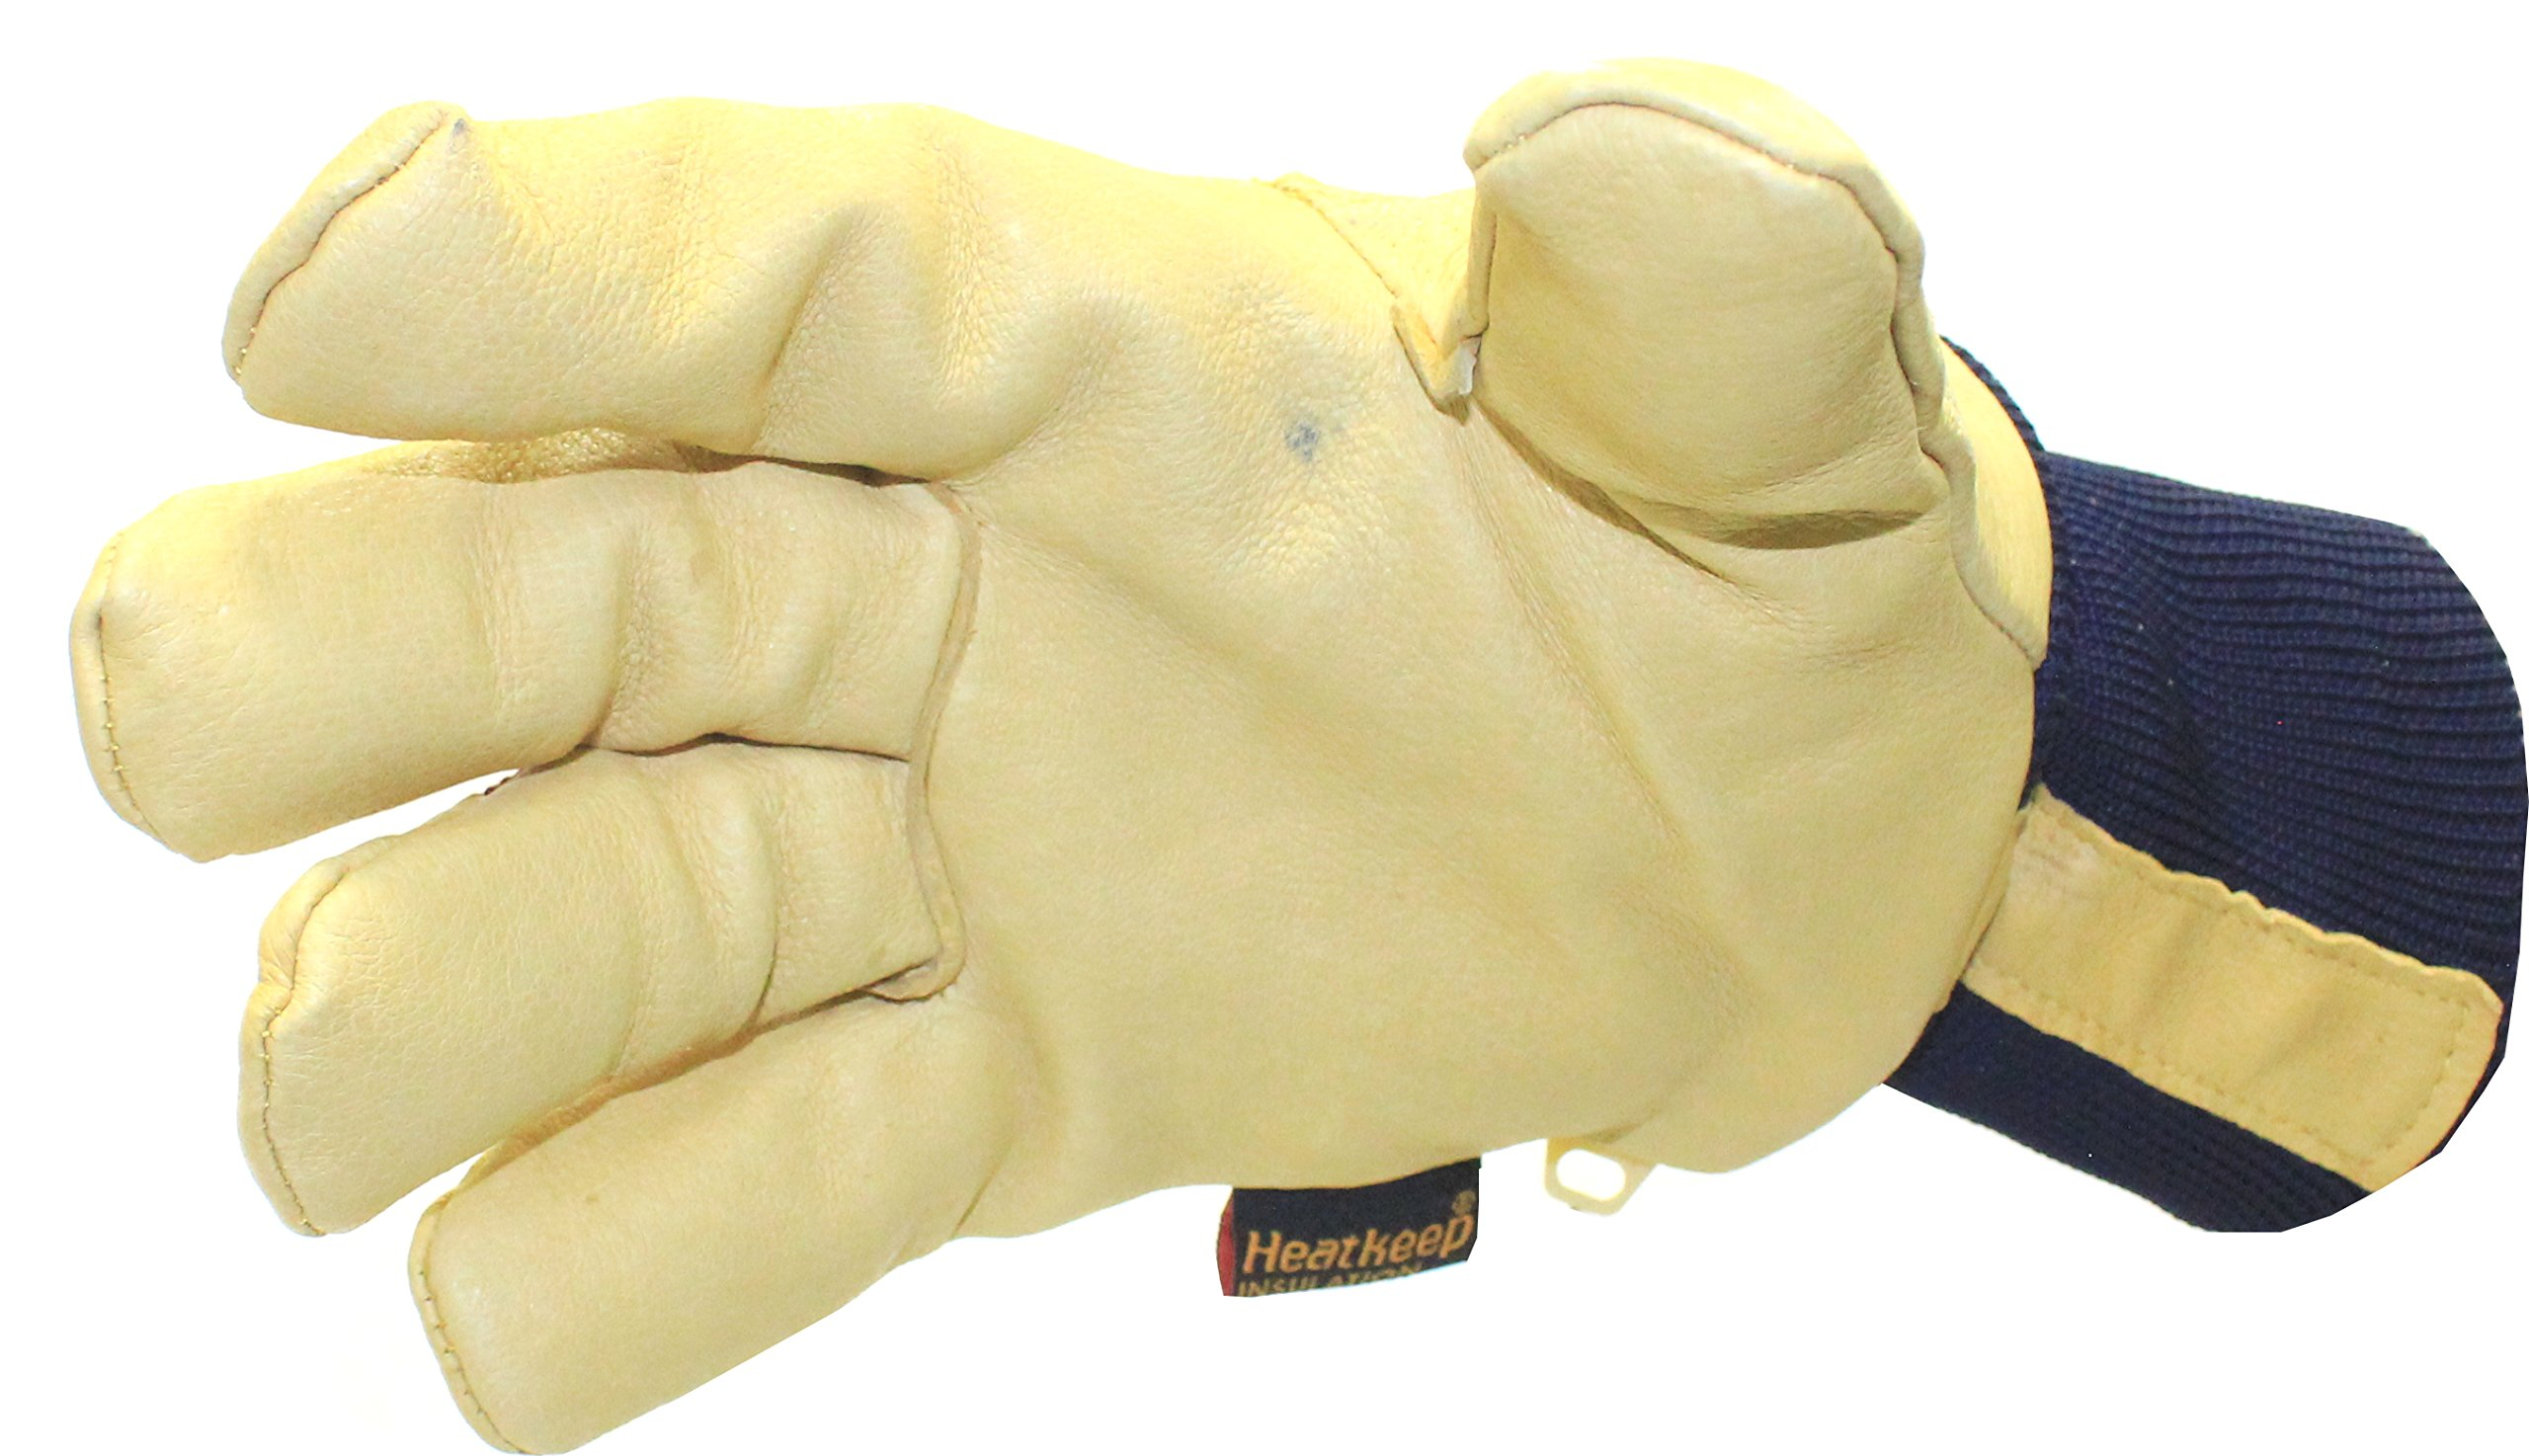 Kinco 1927KW Lined Grain Pigskin Leather Glove with Knit Wrist, Work, Large, Palomino (Pack of 6 Pairs) by KINCO INTERNATIONAL (Image #6)